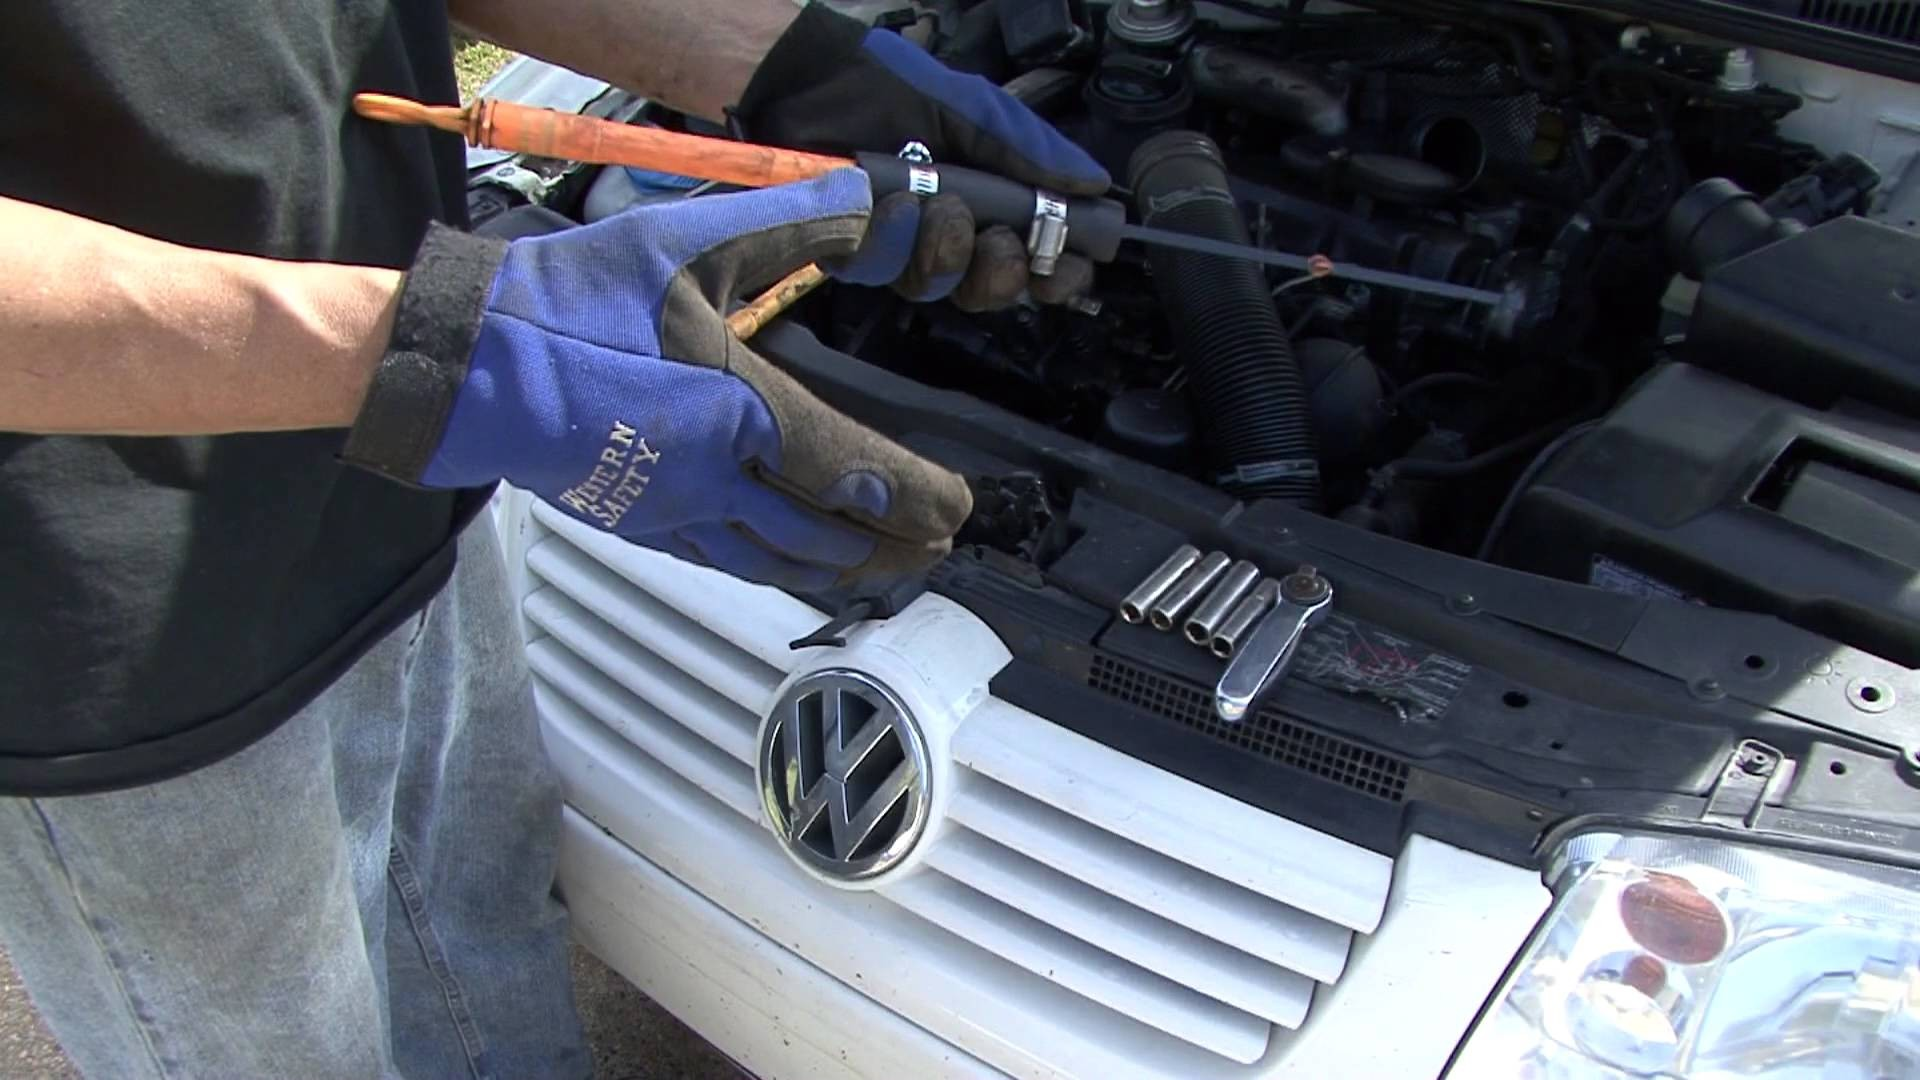 2003 Vw Jetta 2 0 Engine Diagram How to Fix A Volkswagen Oil Dip Stick Part 1 Of 2003 Vw Jetta 2 0 Engine Diagram